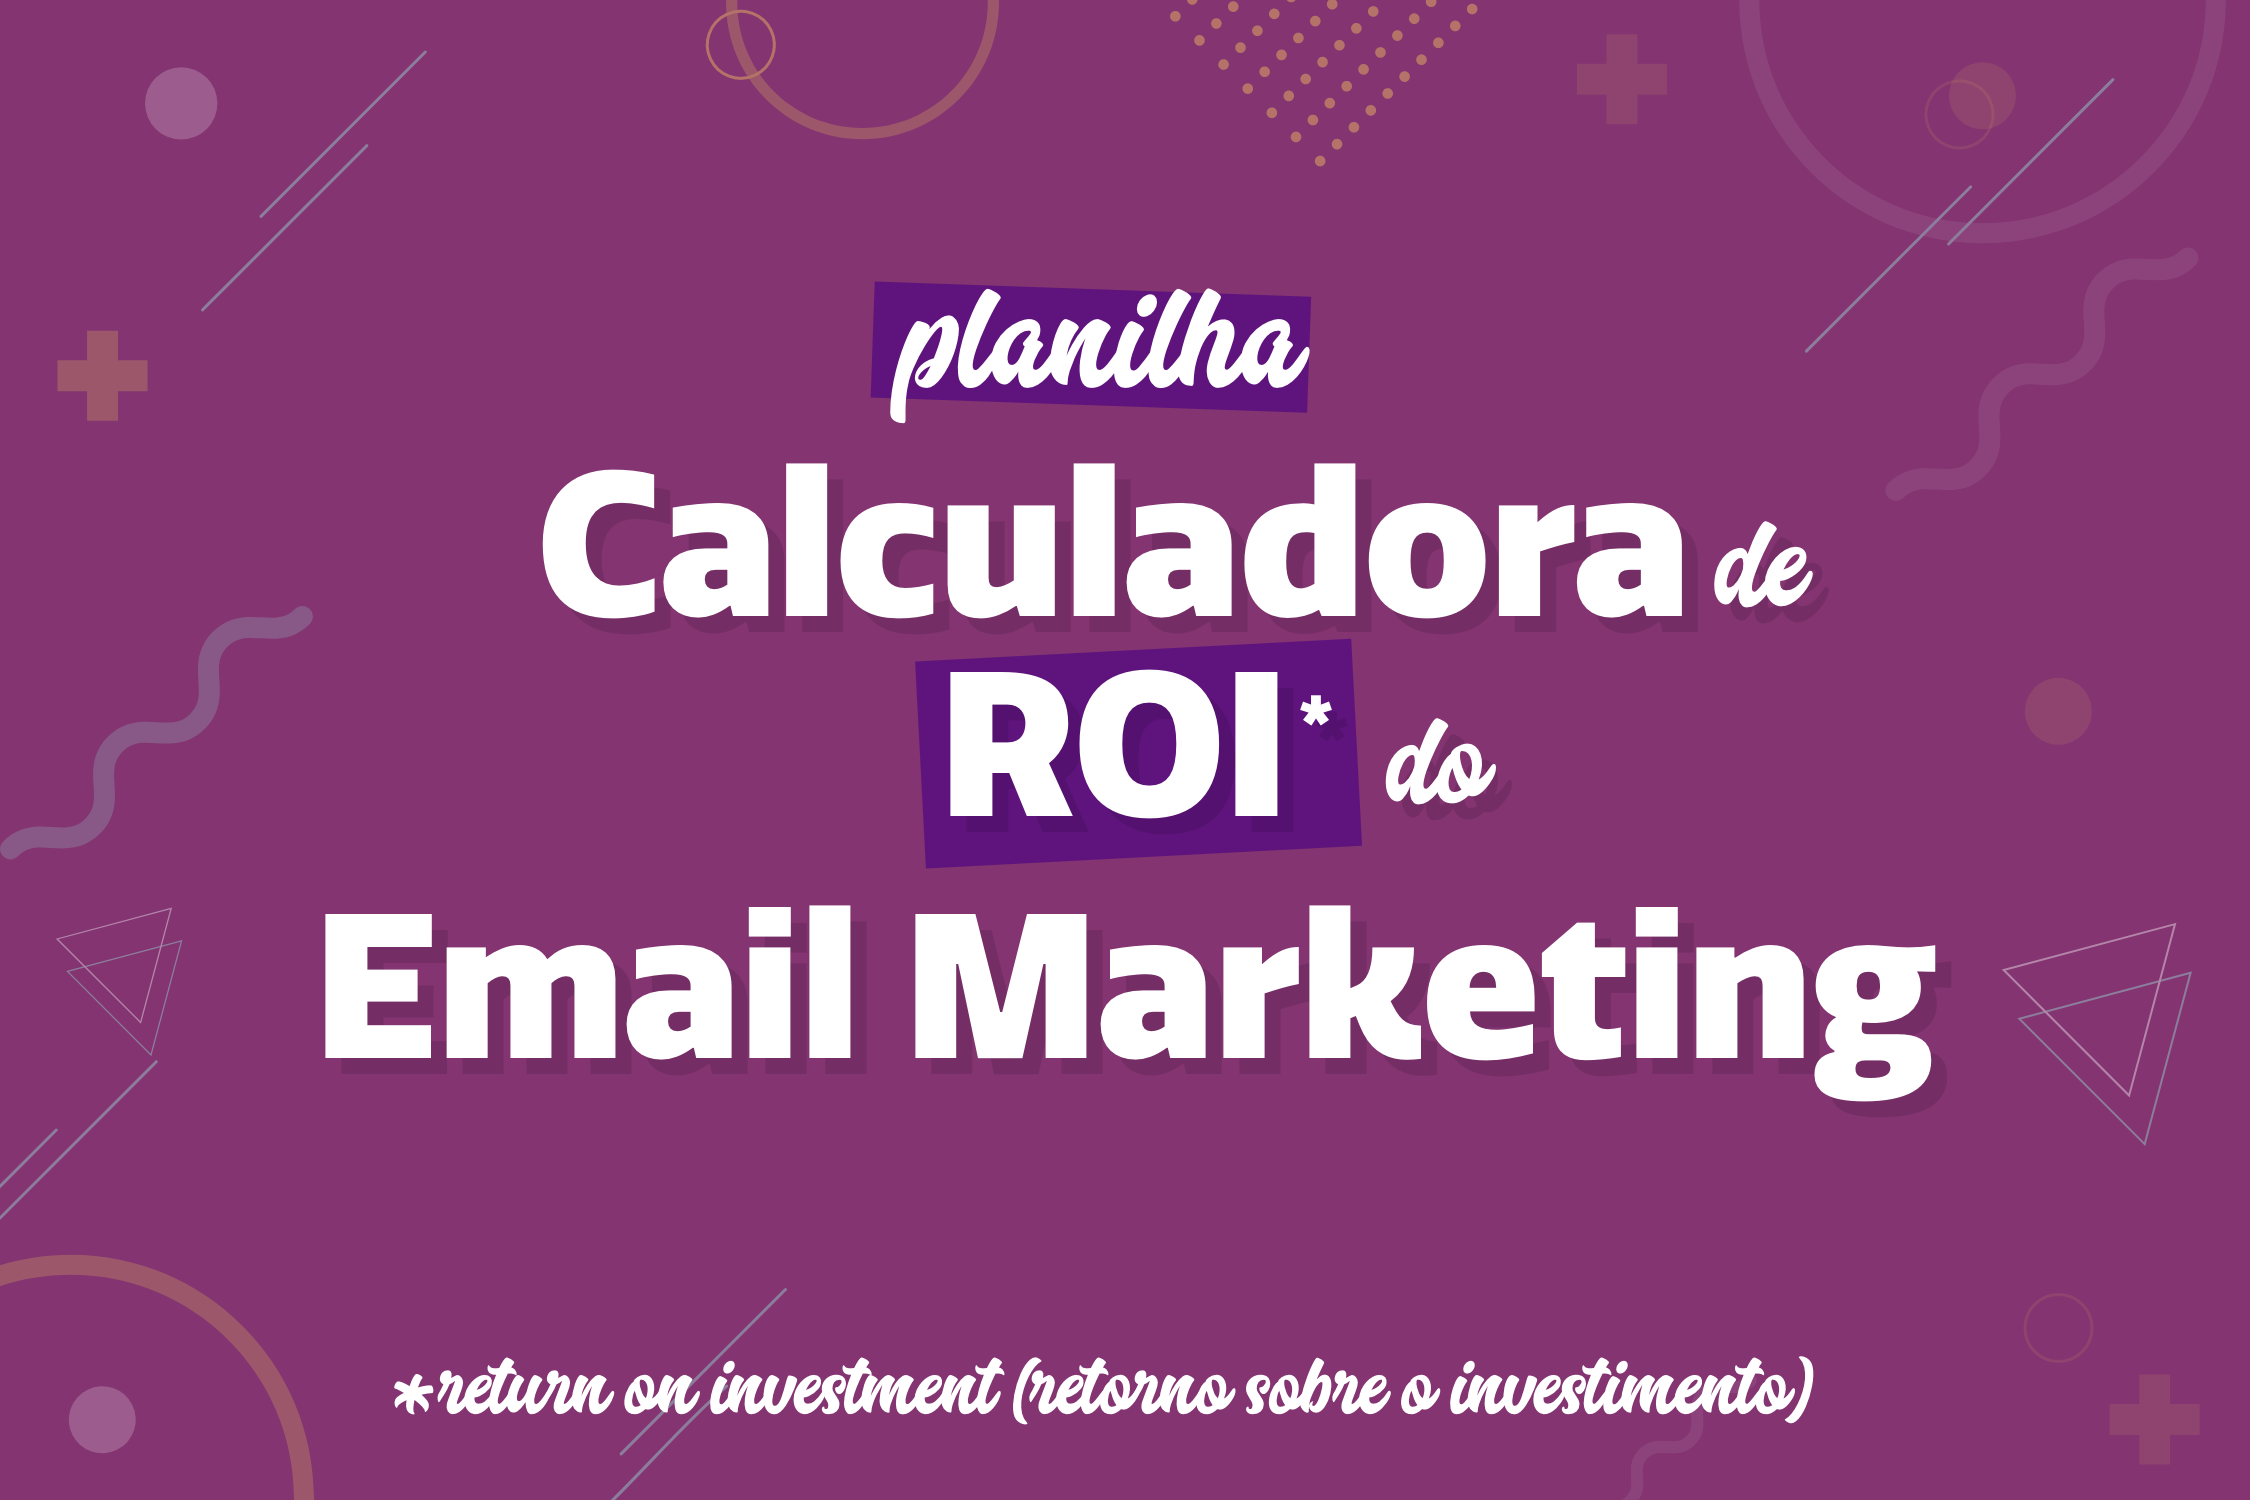 Calculadora de ROI do Email Marketing